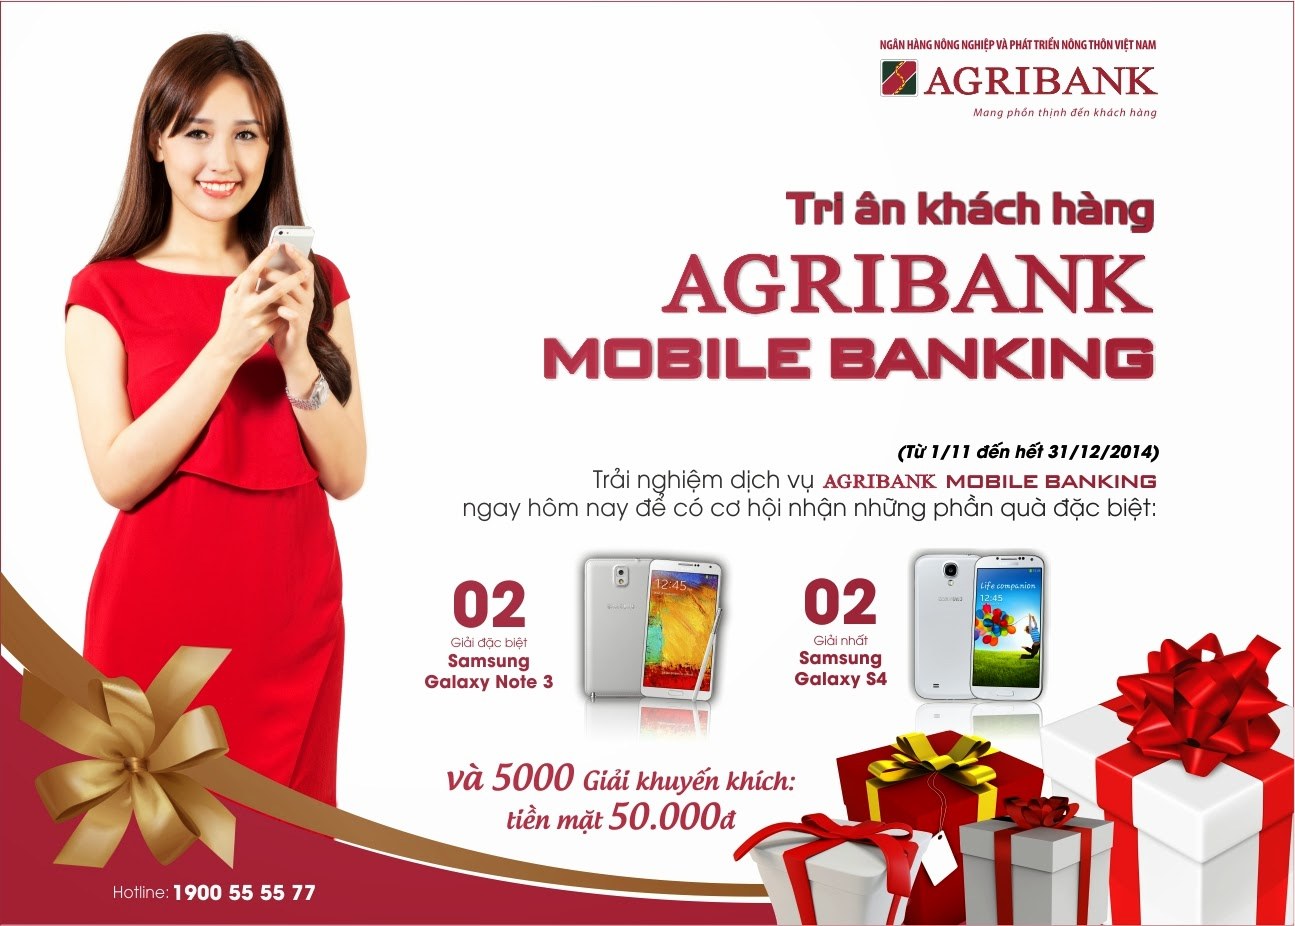 Mobile banking Agribank